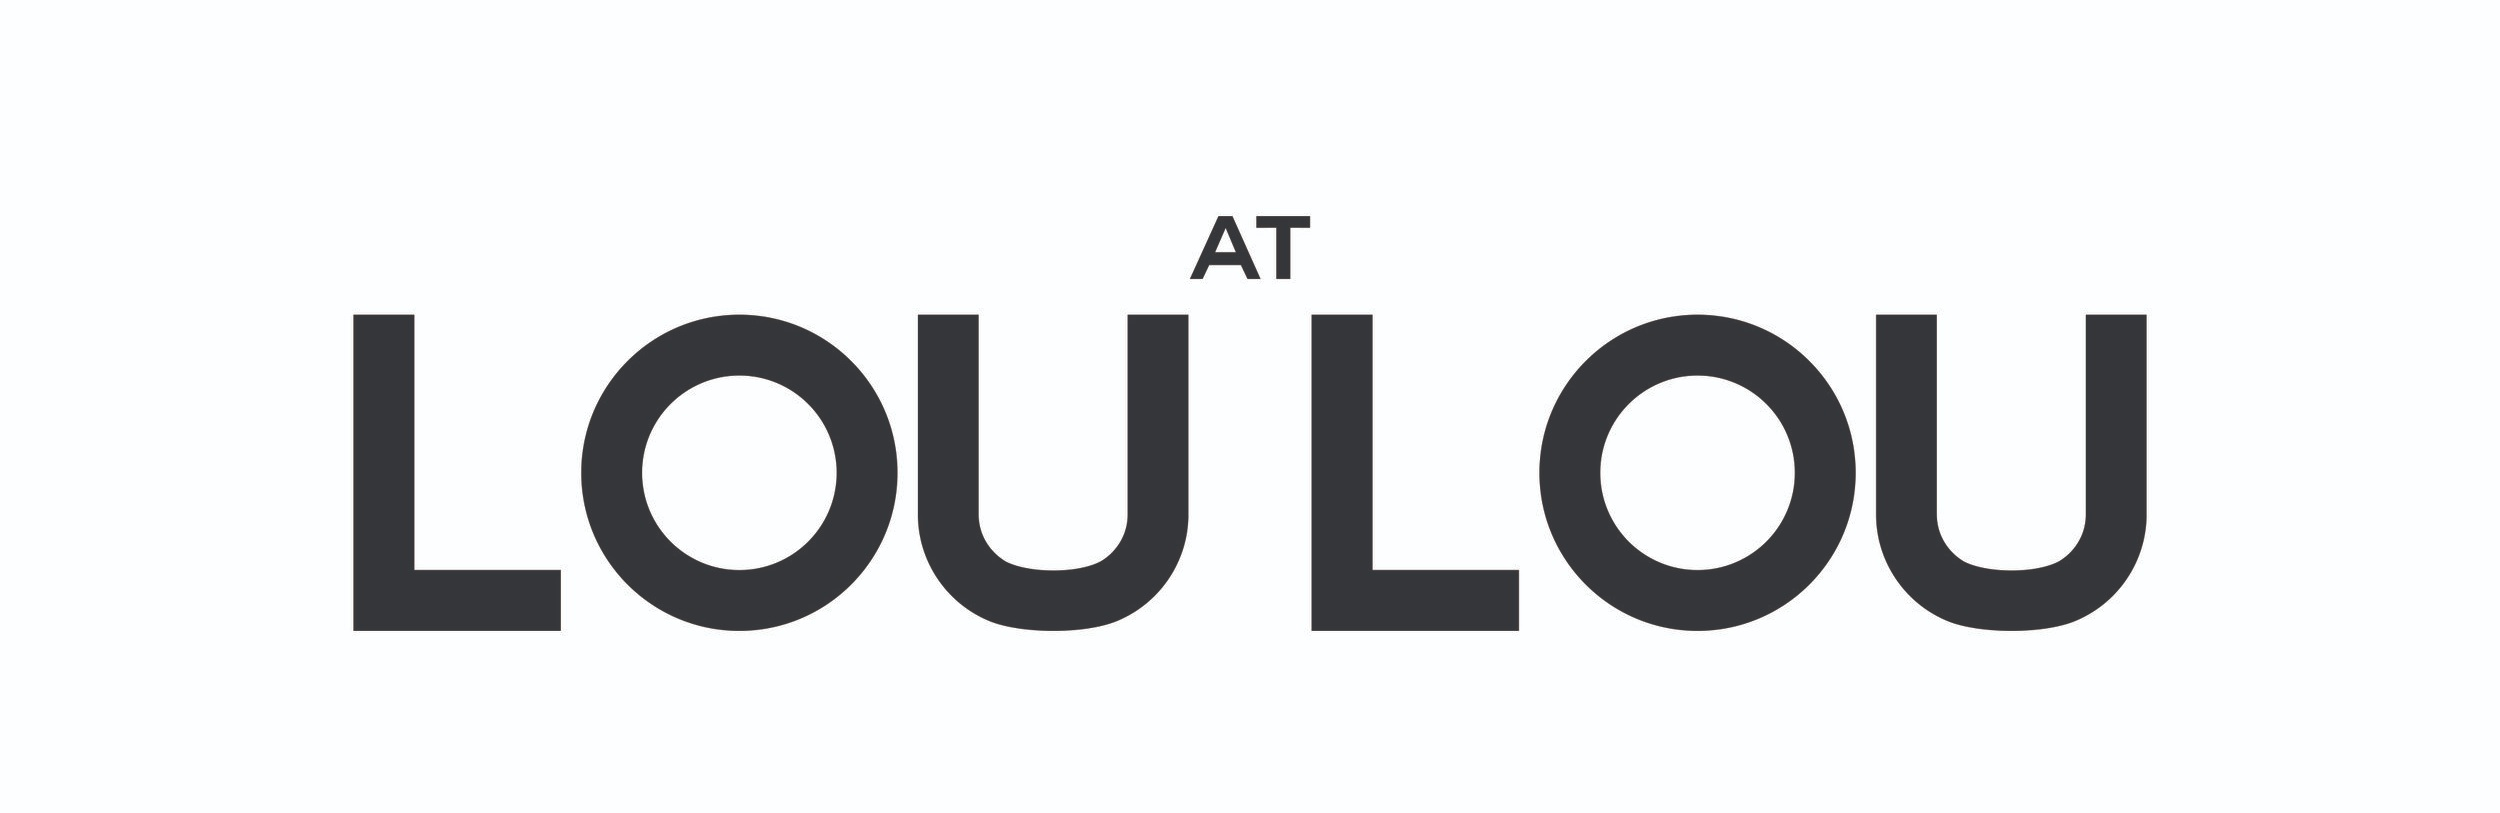 ATLOULOU_LOGO_out2017.jpg